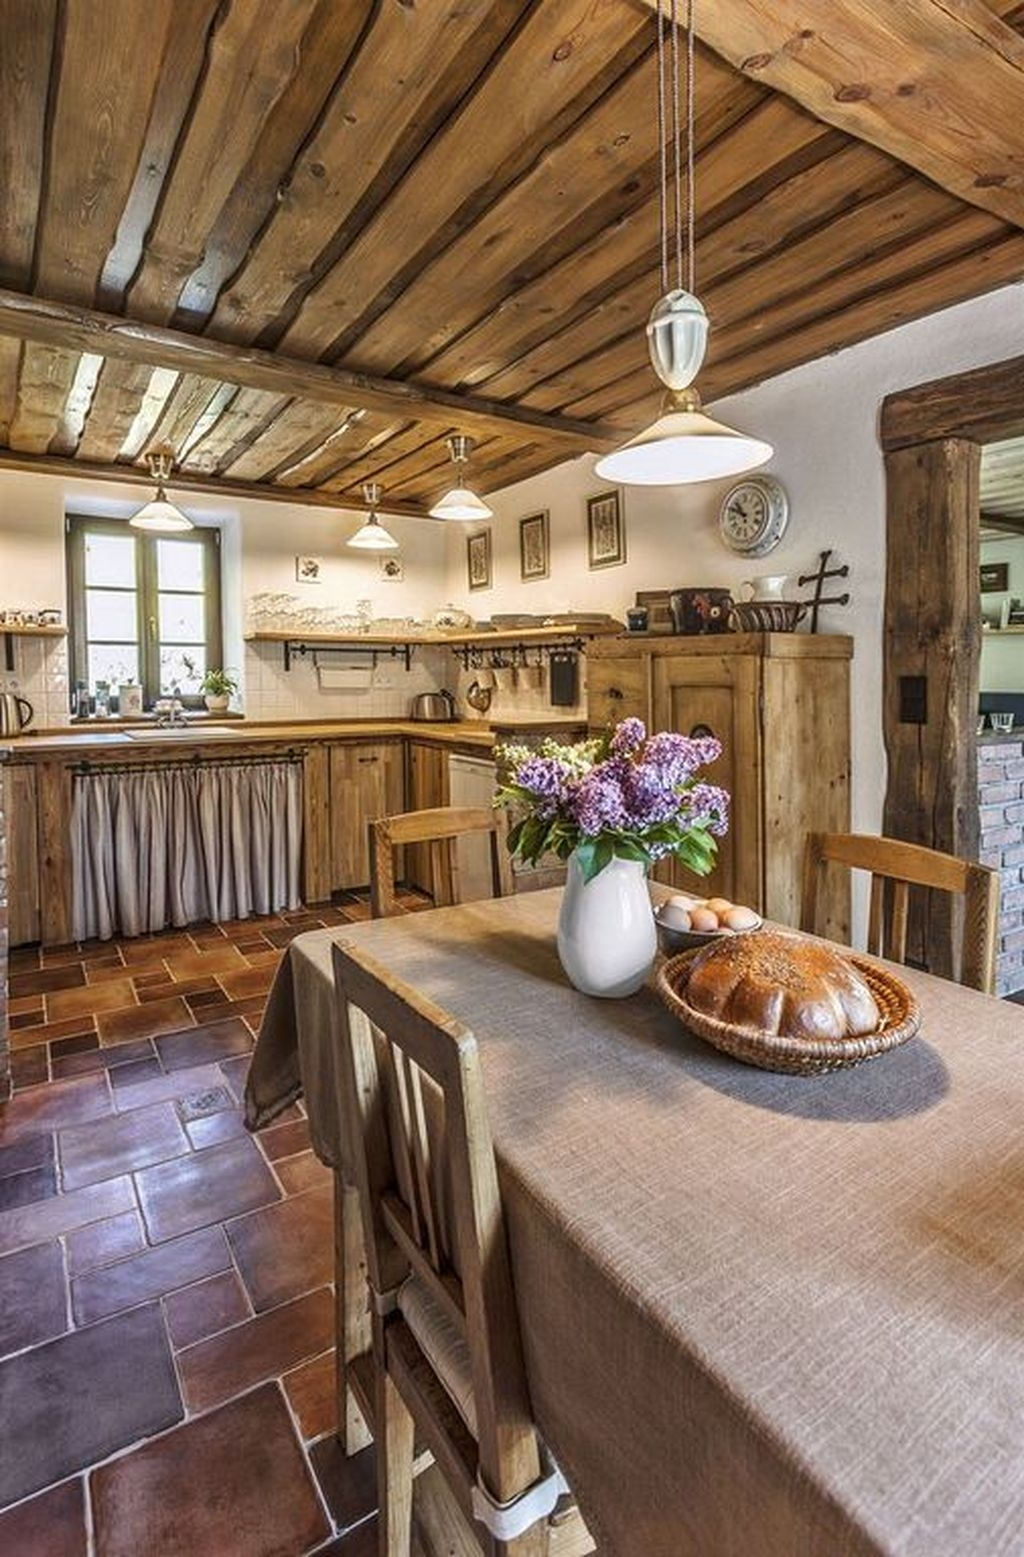 20+ Affordable English Country Kitchen Decor Ideas - GAGOHOME